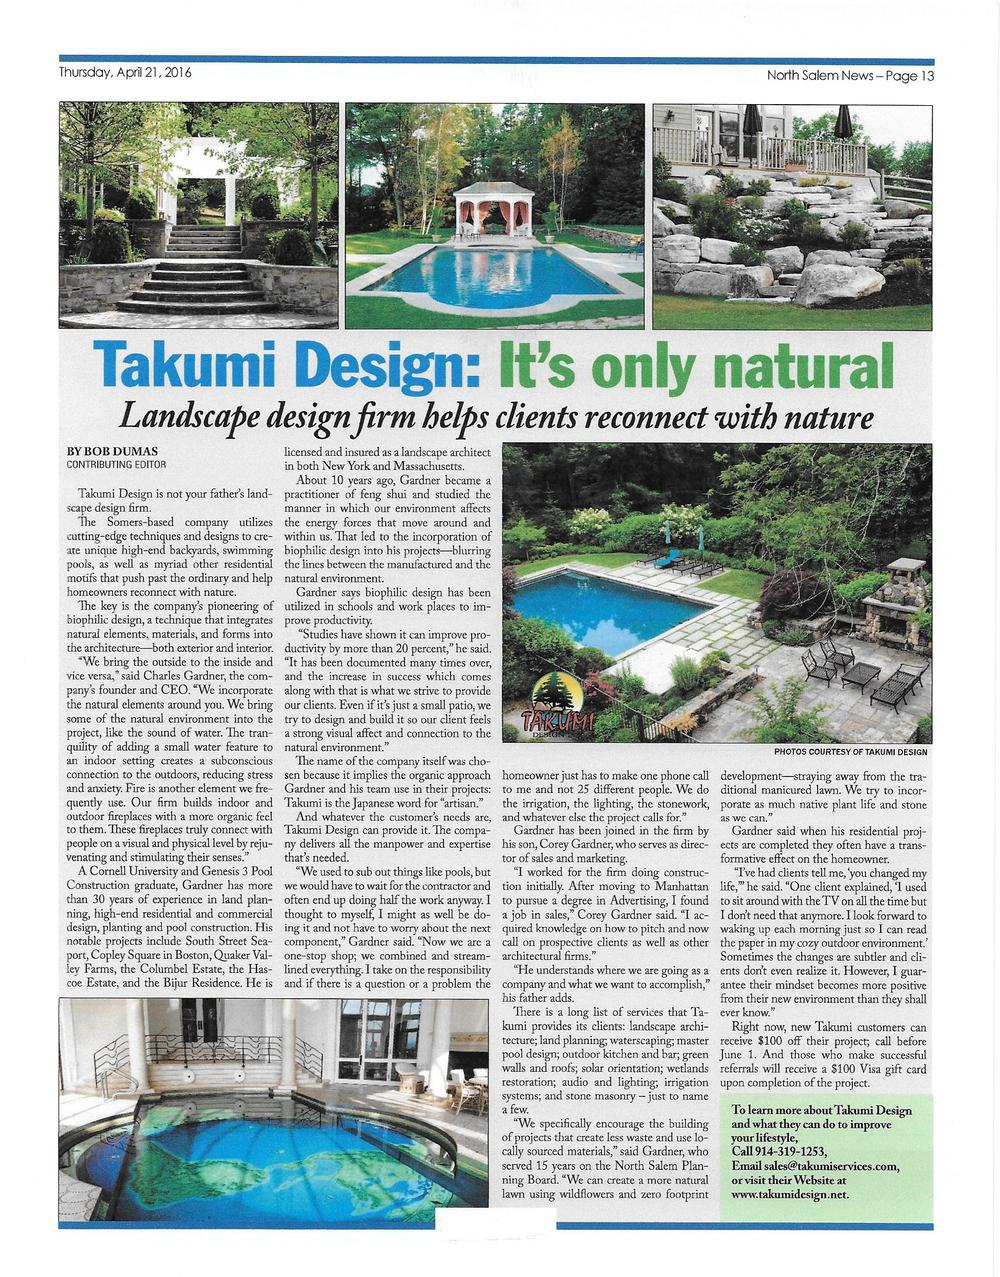 Takumi Design: It's only Natural